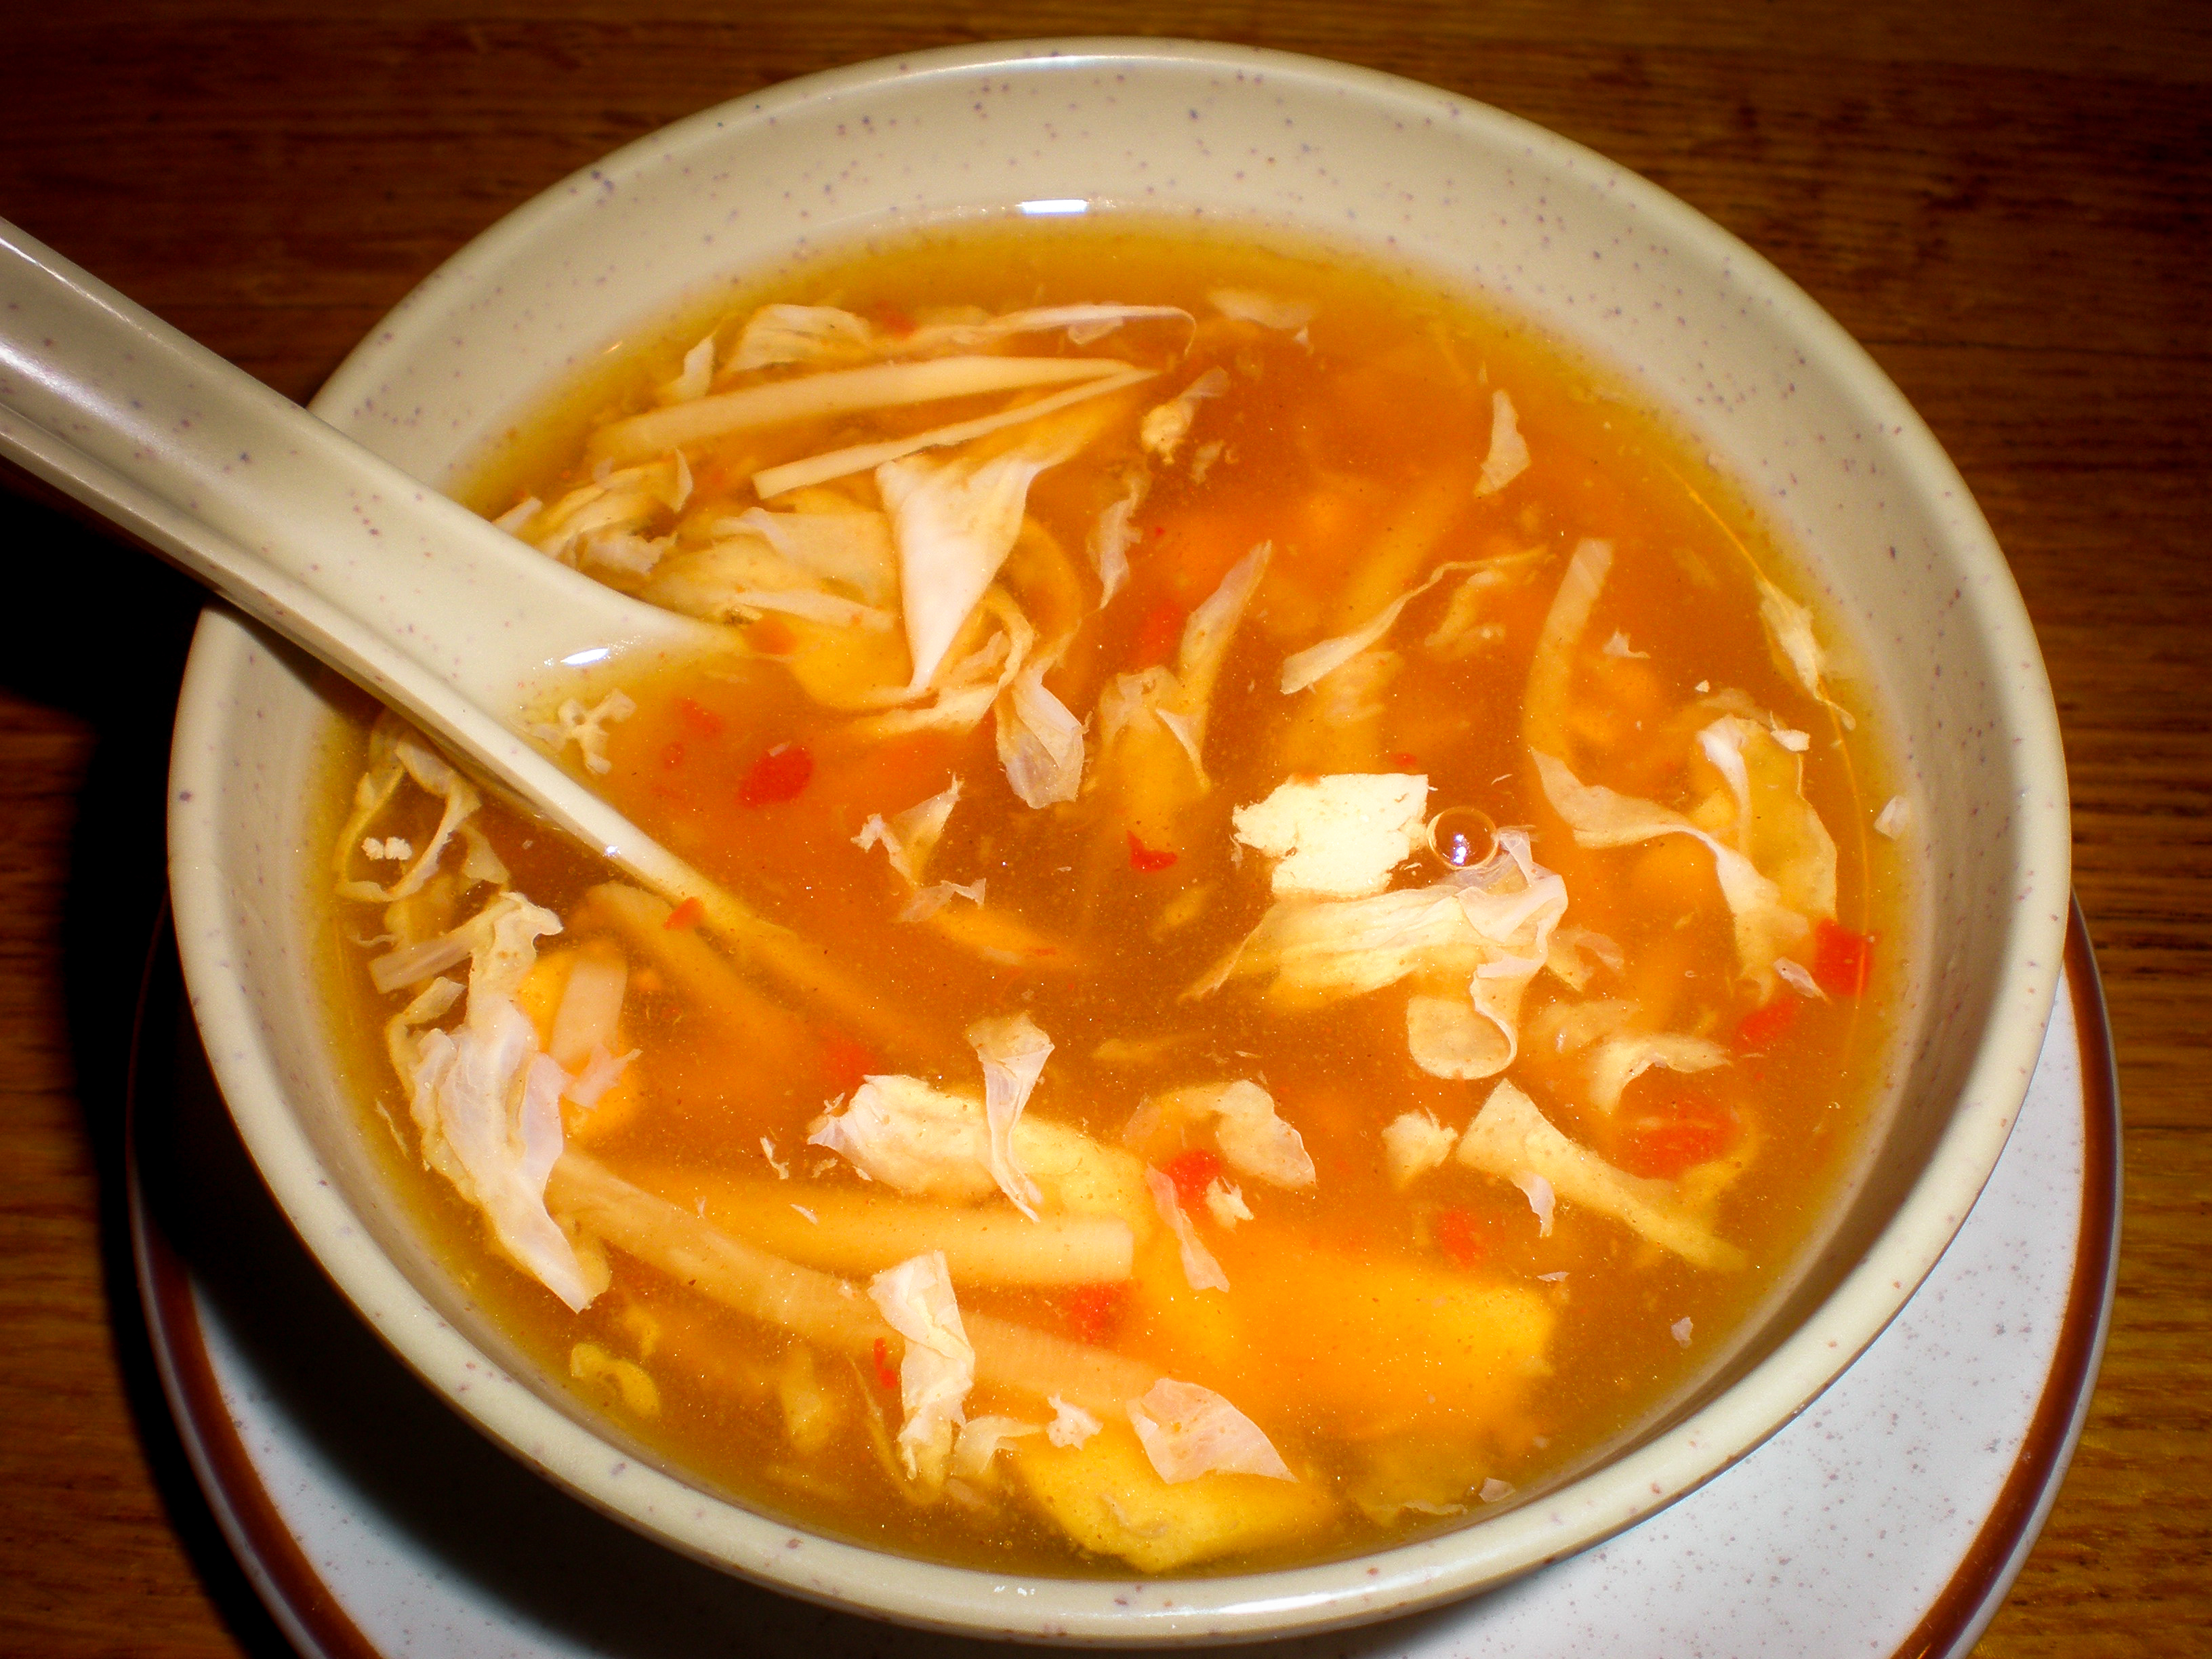 Ping_SJ_hot_%26_sour_soup.JPG#hot%20and%20sour%20soup%203264x2448